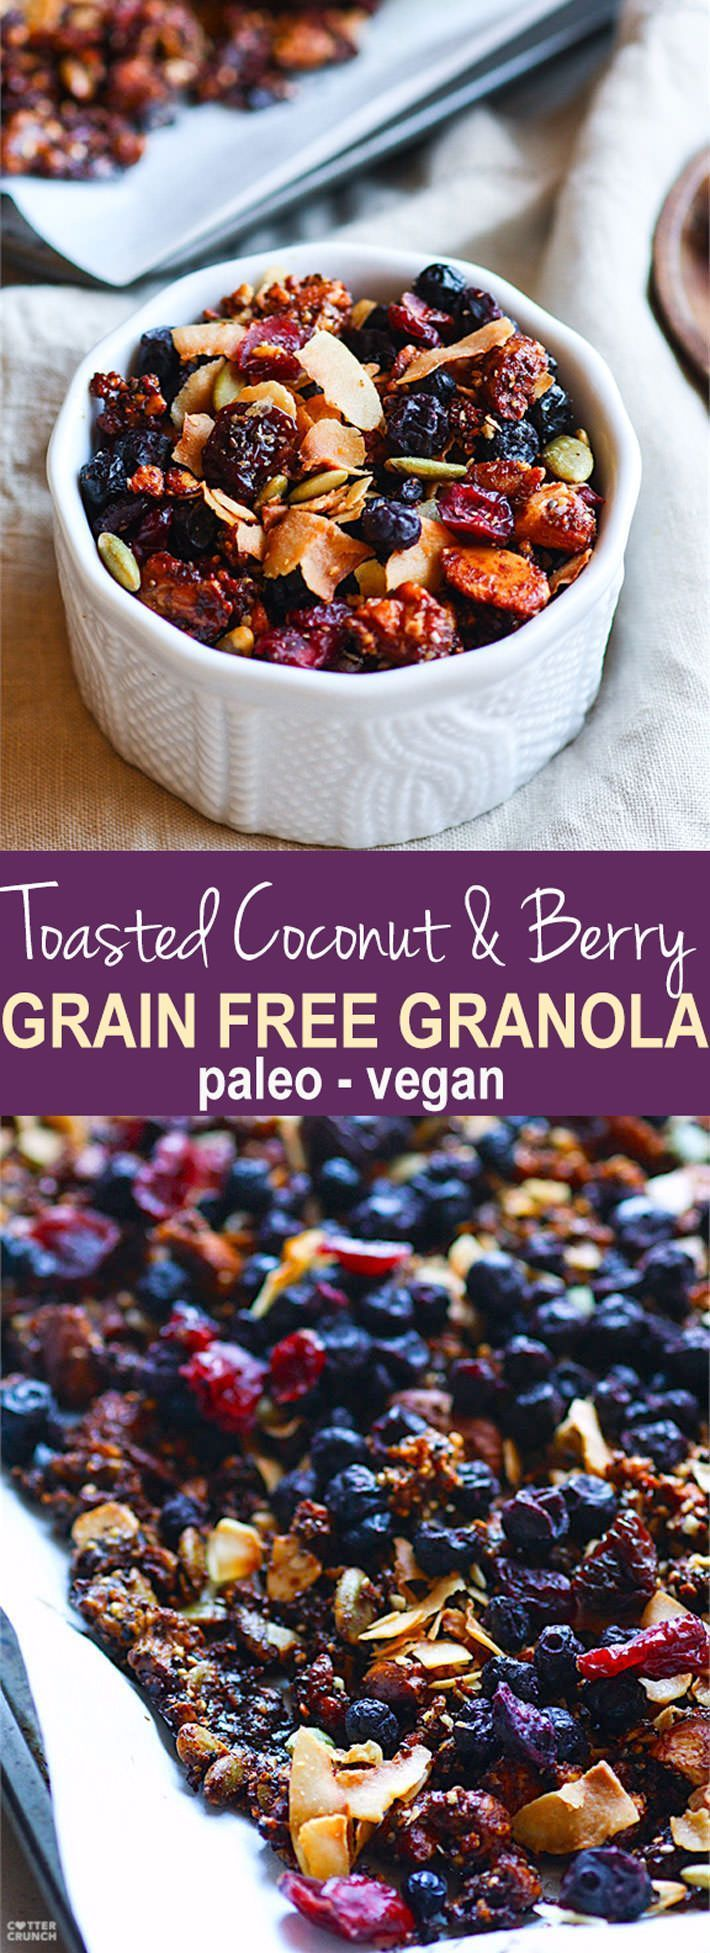 Toasted Coconut and Berry Grain Free Granola! A super simple homemade vegan and paleo grain free granola recipe that tastes so good! An assortment of Nuts, seeds, dried berries, spices, coconut oil, coconut, and maple syrup all baked up, that's it! Perfectly filling and EASY to throw together! Great fuel for you or a gift ideas for others. www.cottercrunch.com